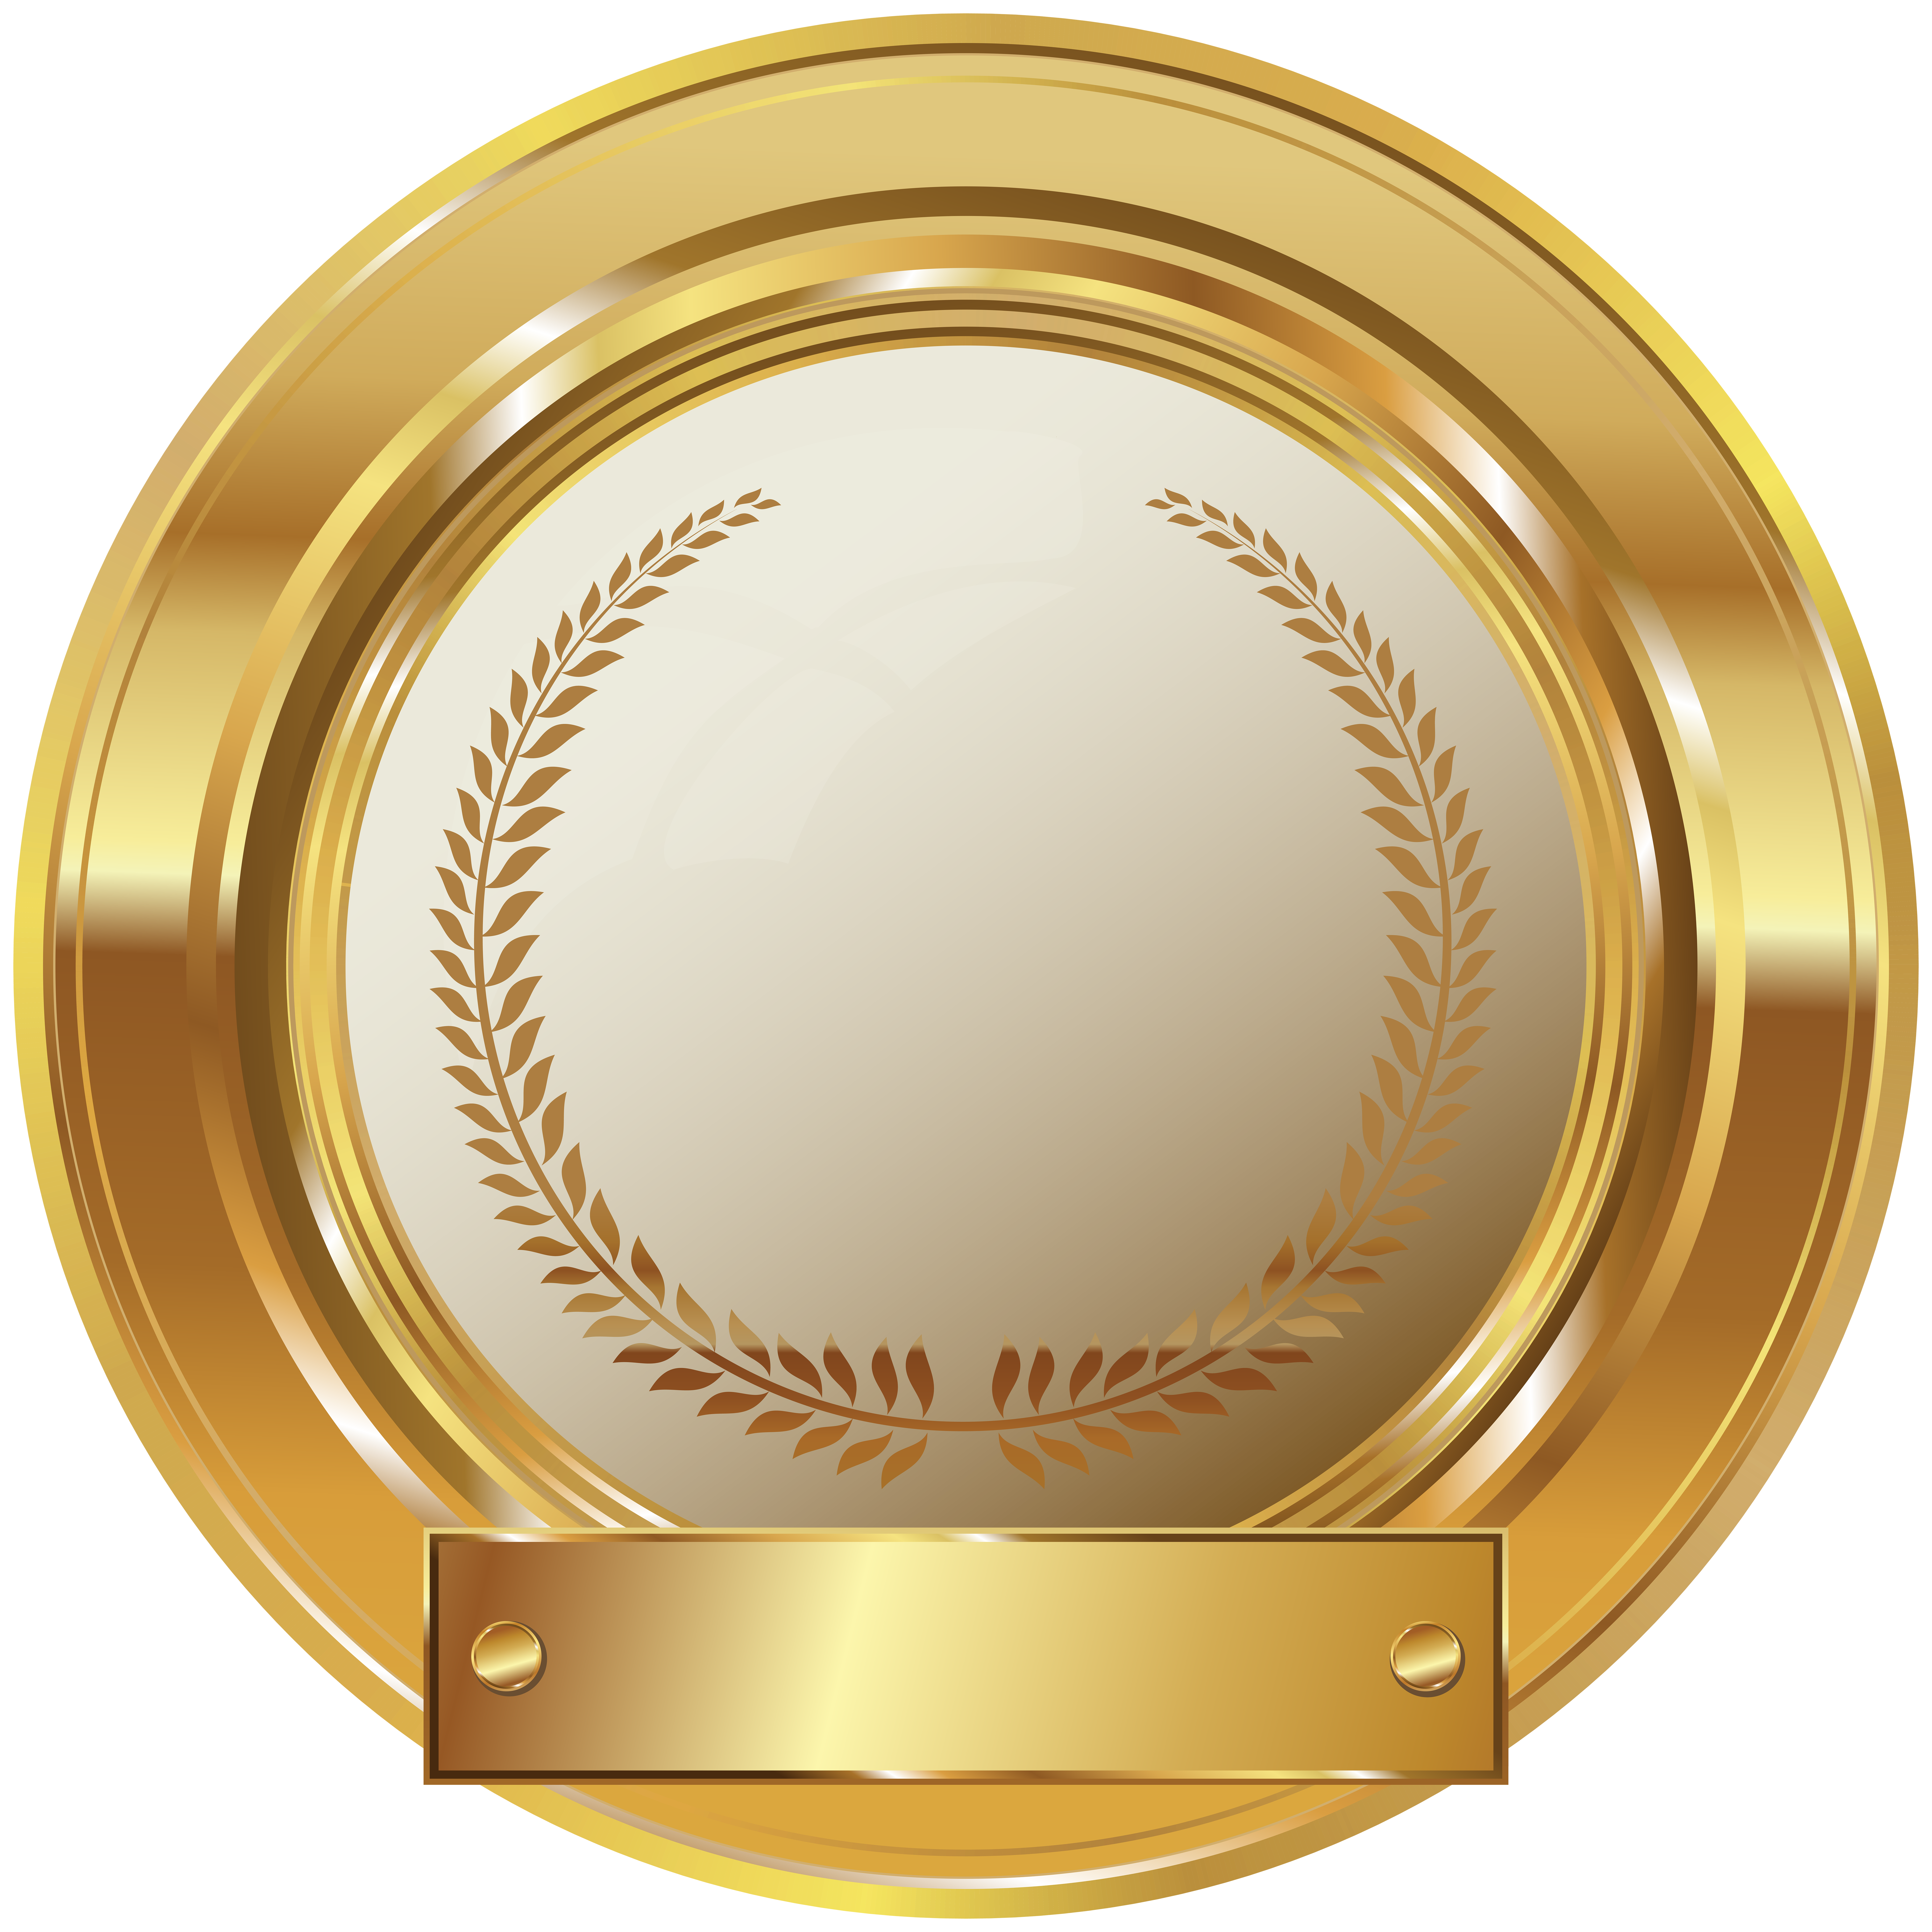 Gold seal png clip. Football clipart badge